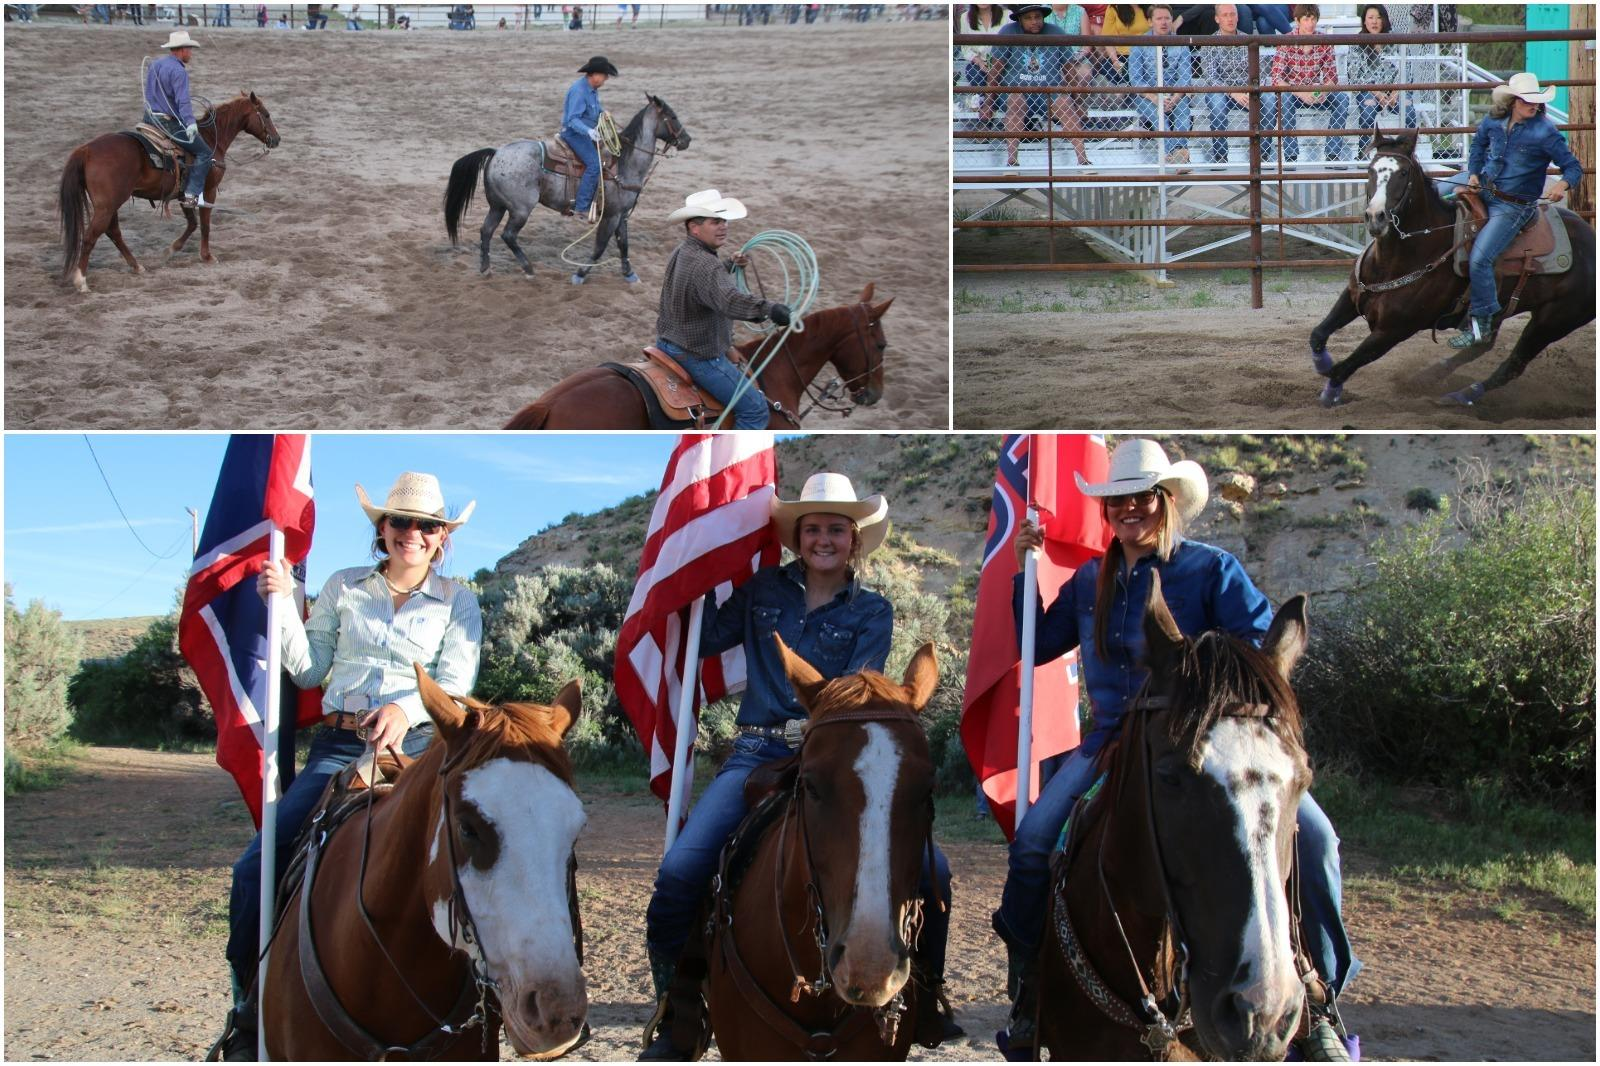 One of the best things to do in Wyoming is see a rodeo!